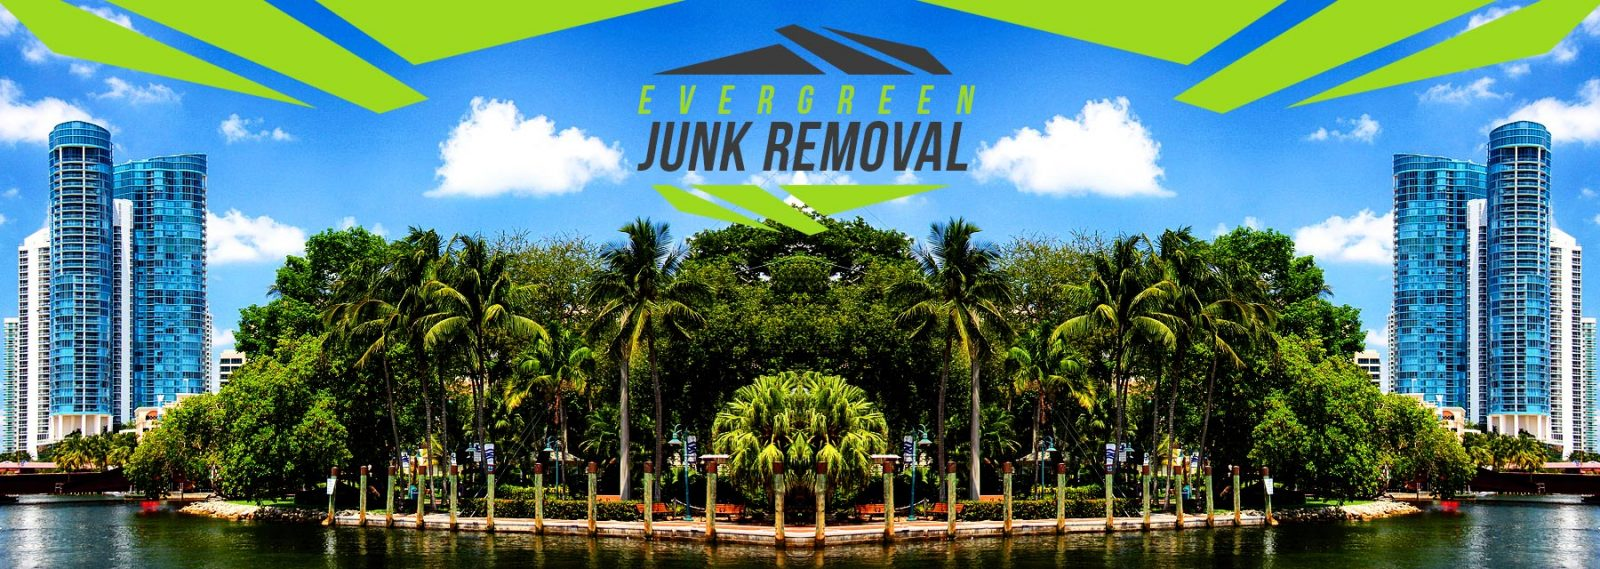 Pompano Beach Hot Tub Removal Company